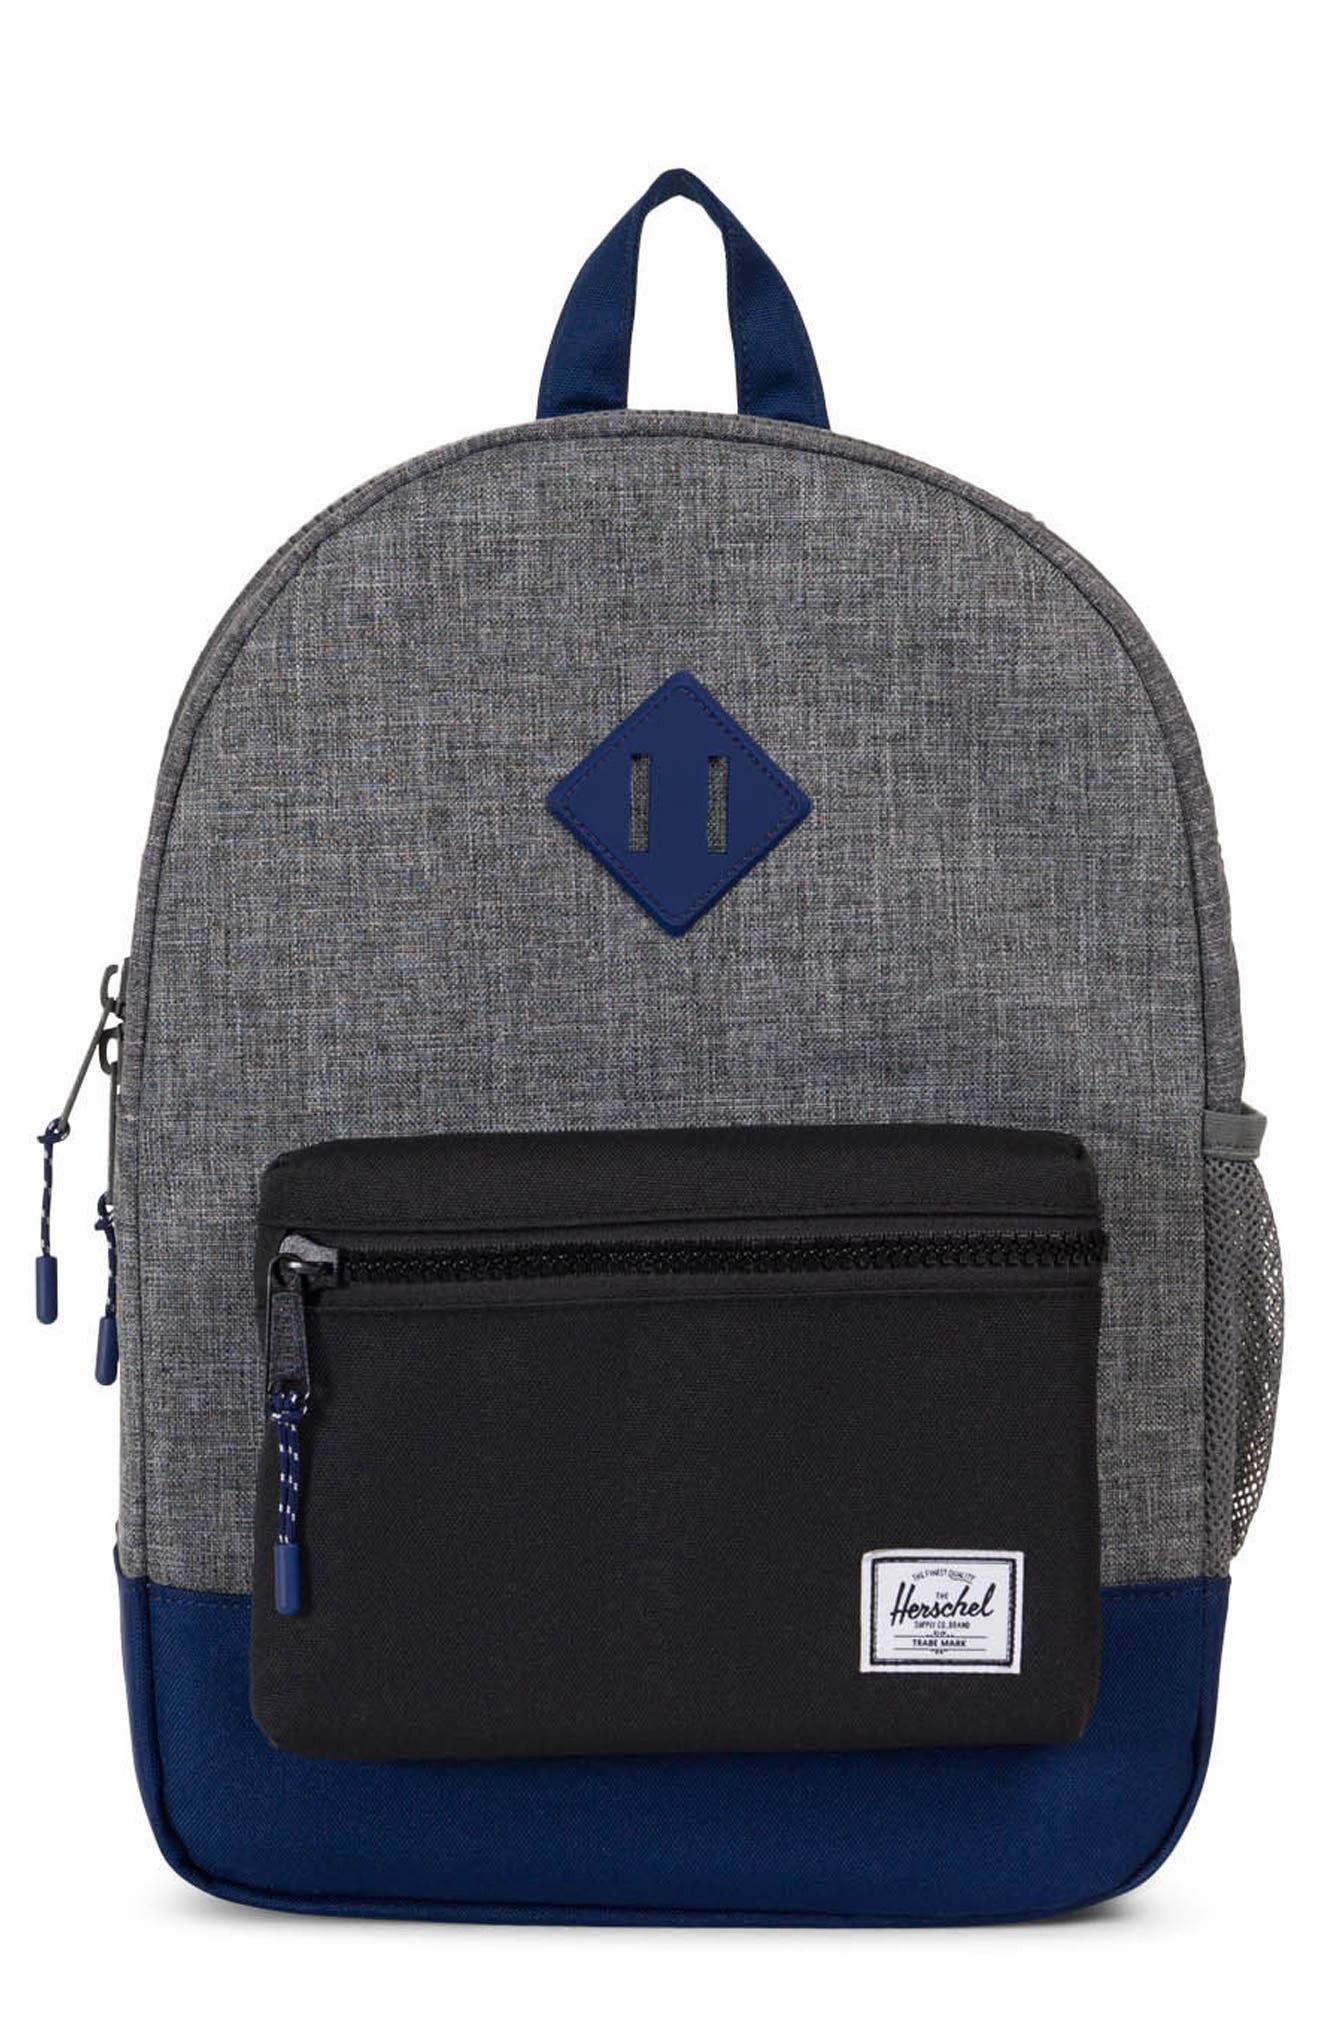 Heritage Backpack,                             Main thumbnail 1, color,                             Raven/ Black